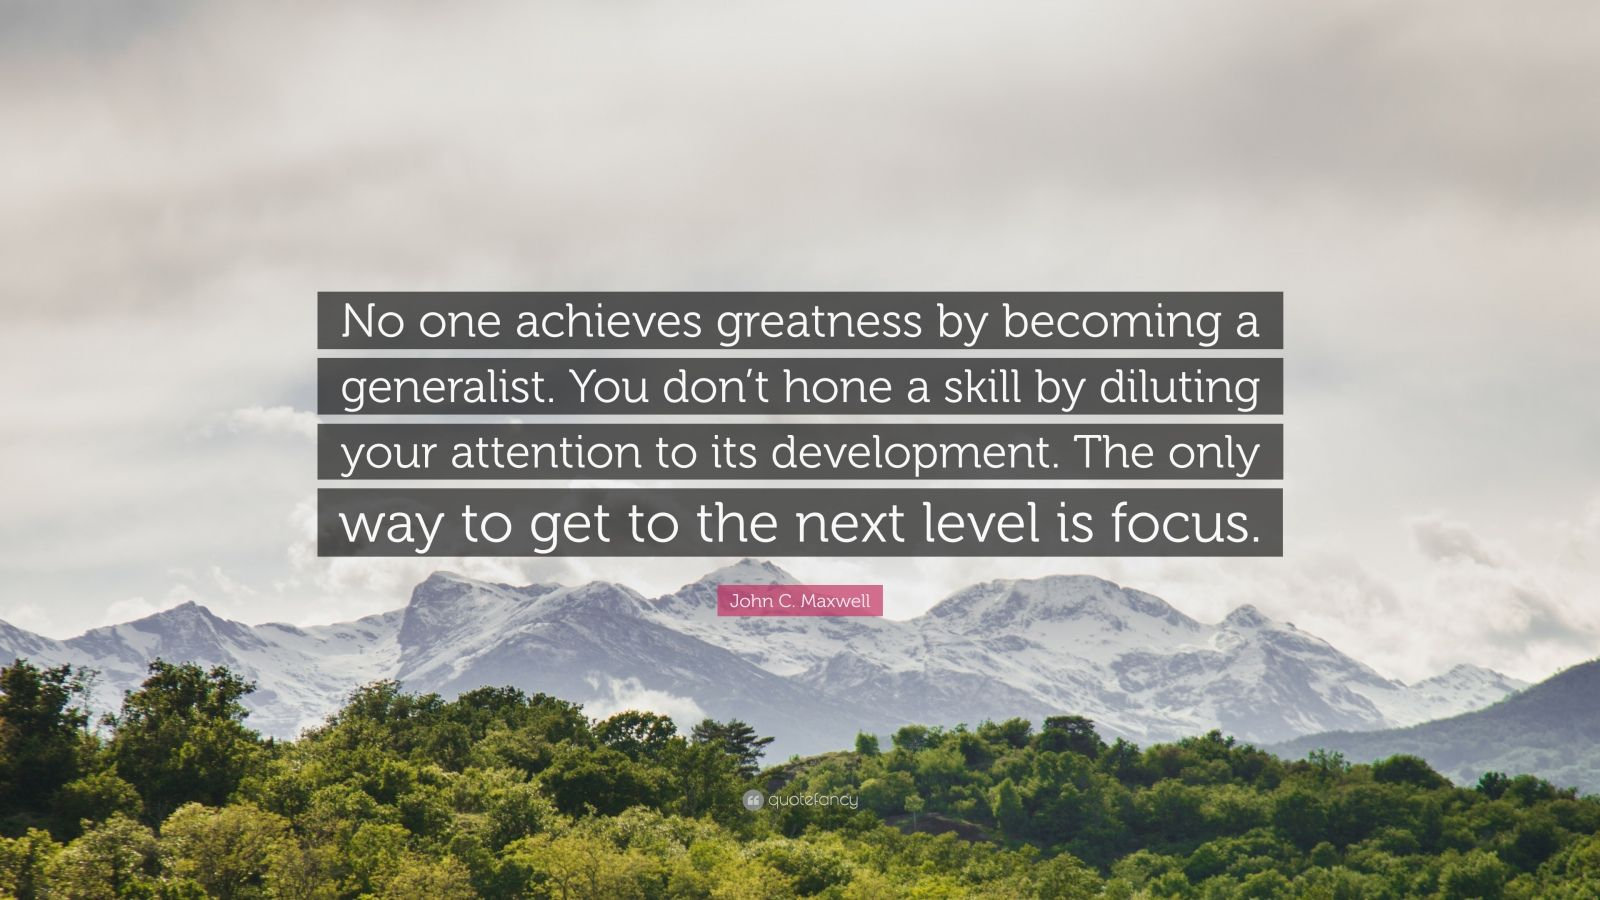 """John C. Maxwell Quote: """"No one achieves greatness by becoming a generalist. You don't hone a skill by diluting your attention to its development. The only way to get to the next level is focus."""""""